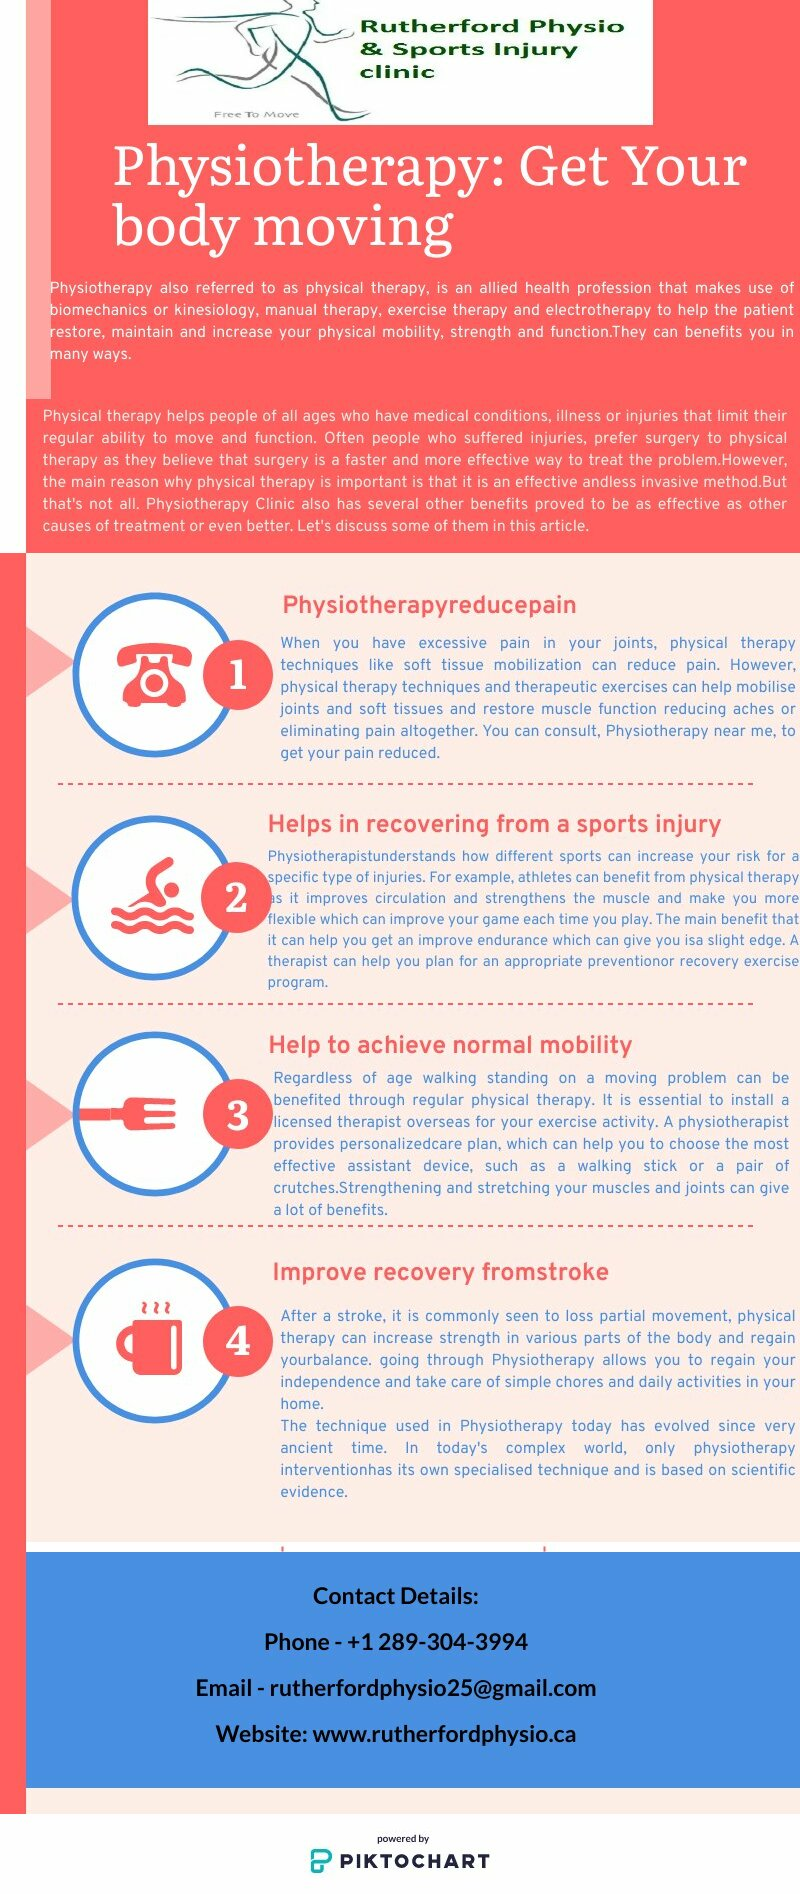 Physiotherapy: Get Your body moving